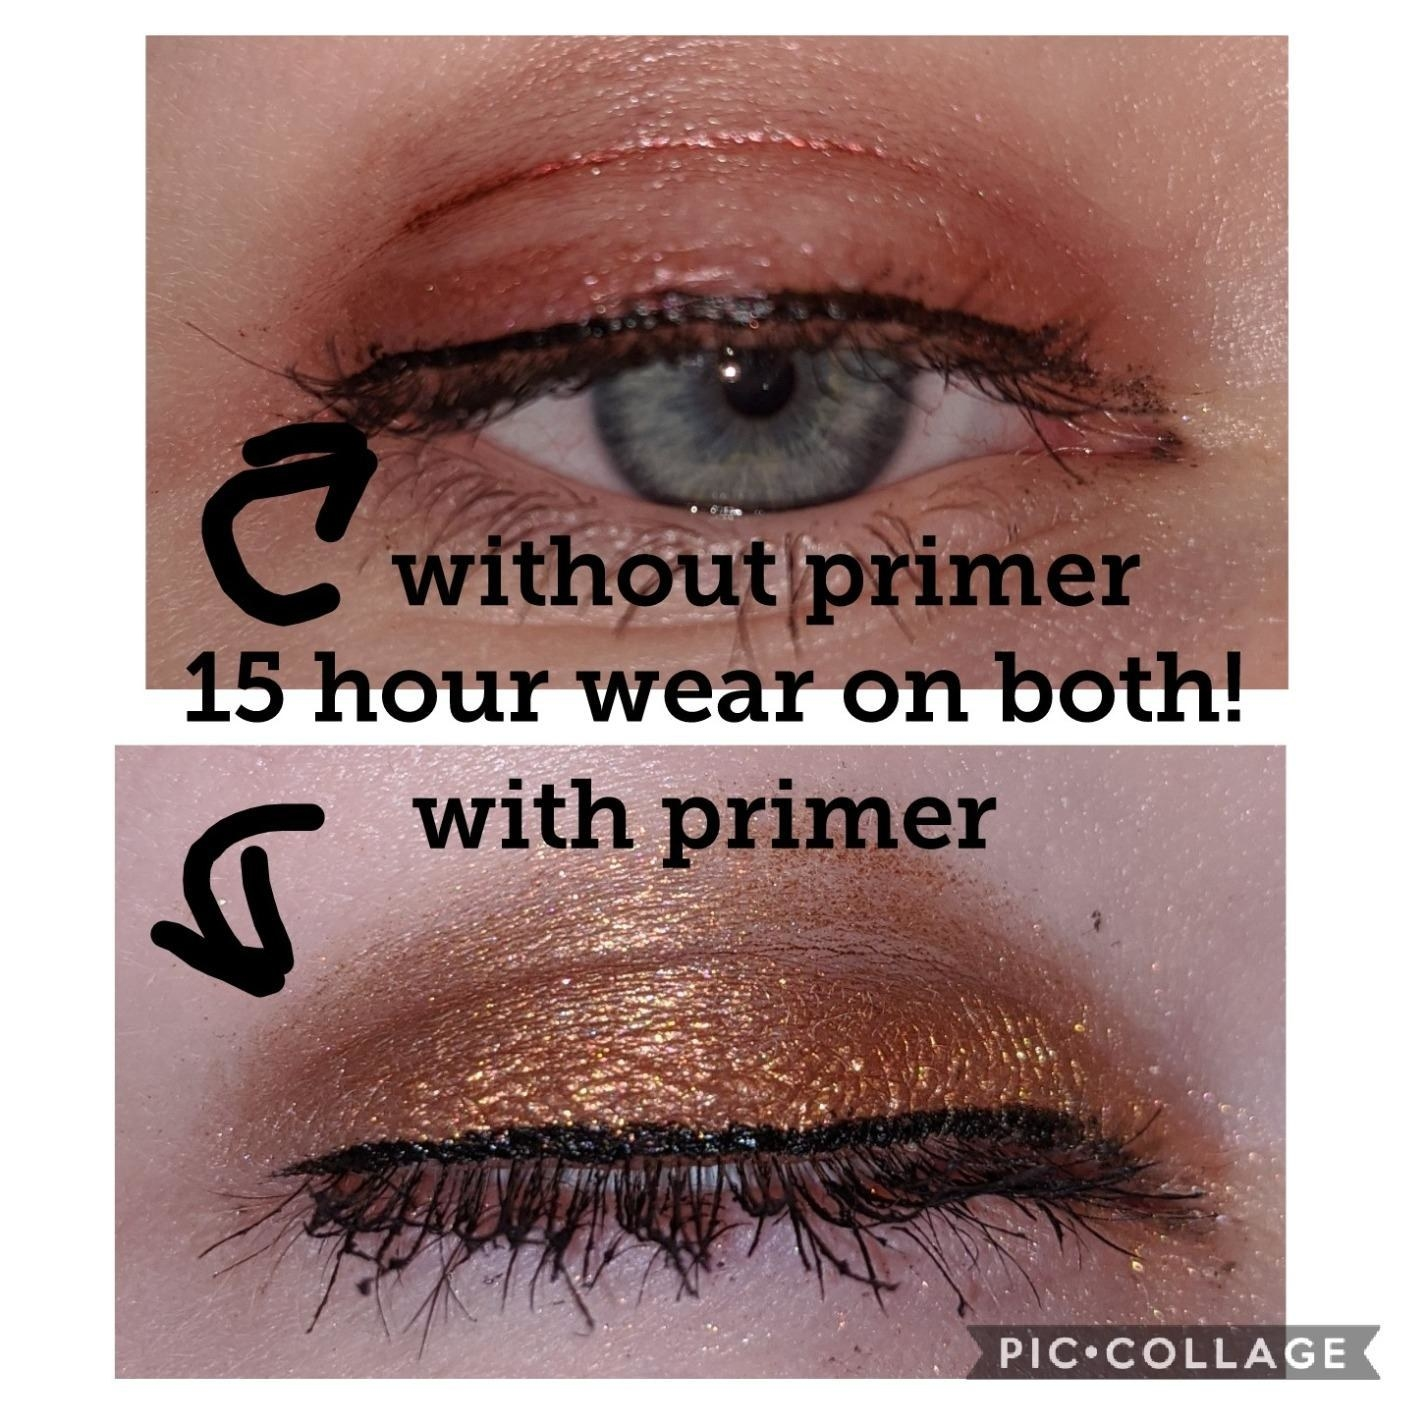 A reviewer showing the difference the primer makes — one photo without primer showing the makeup rubbed off and creased after 15 hours, one with the primer showing the sparkly eyeshadow fully on after 15 hours